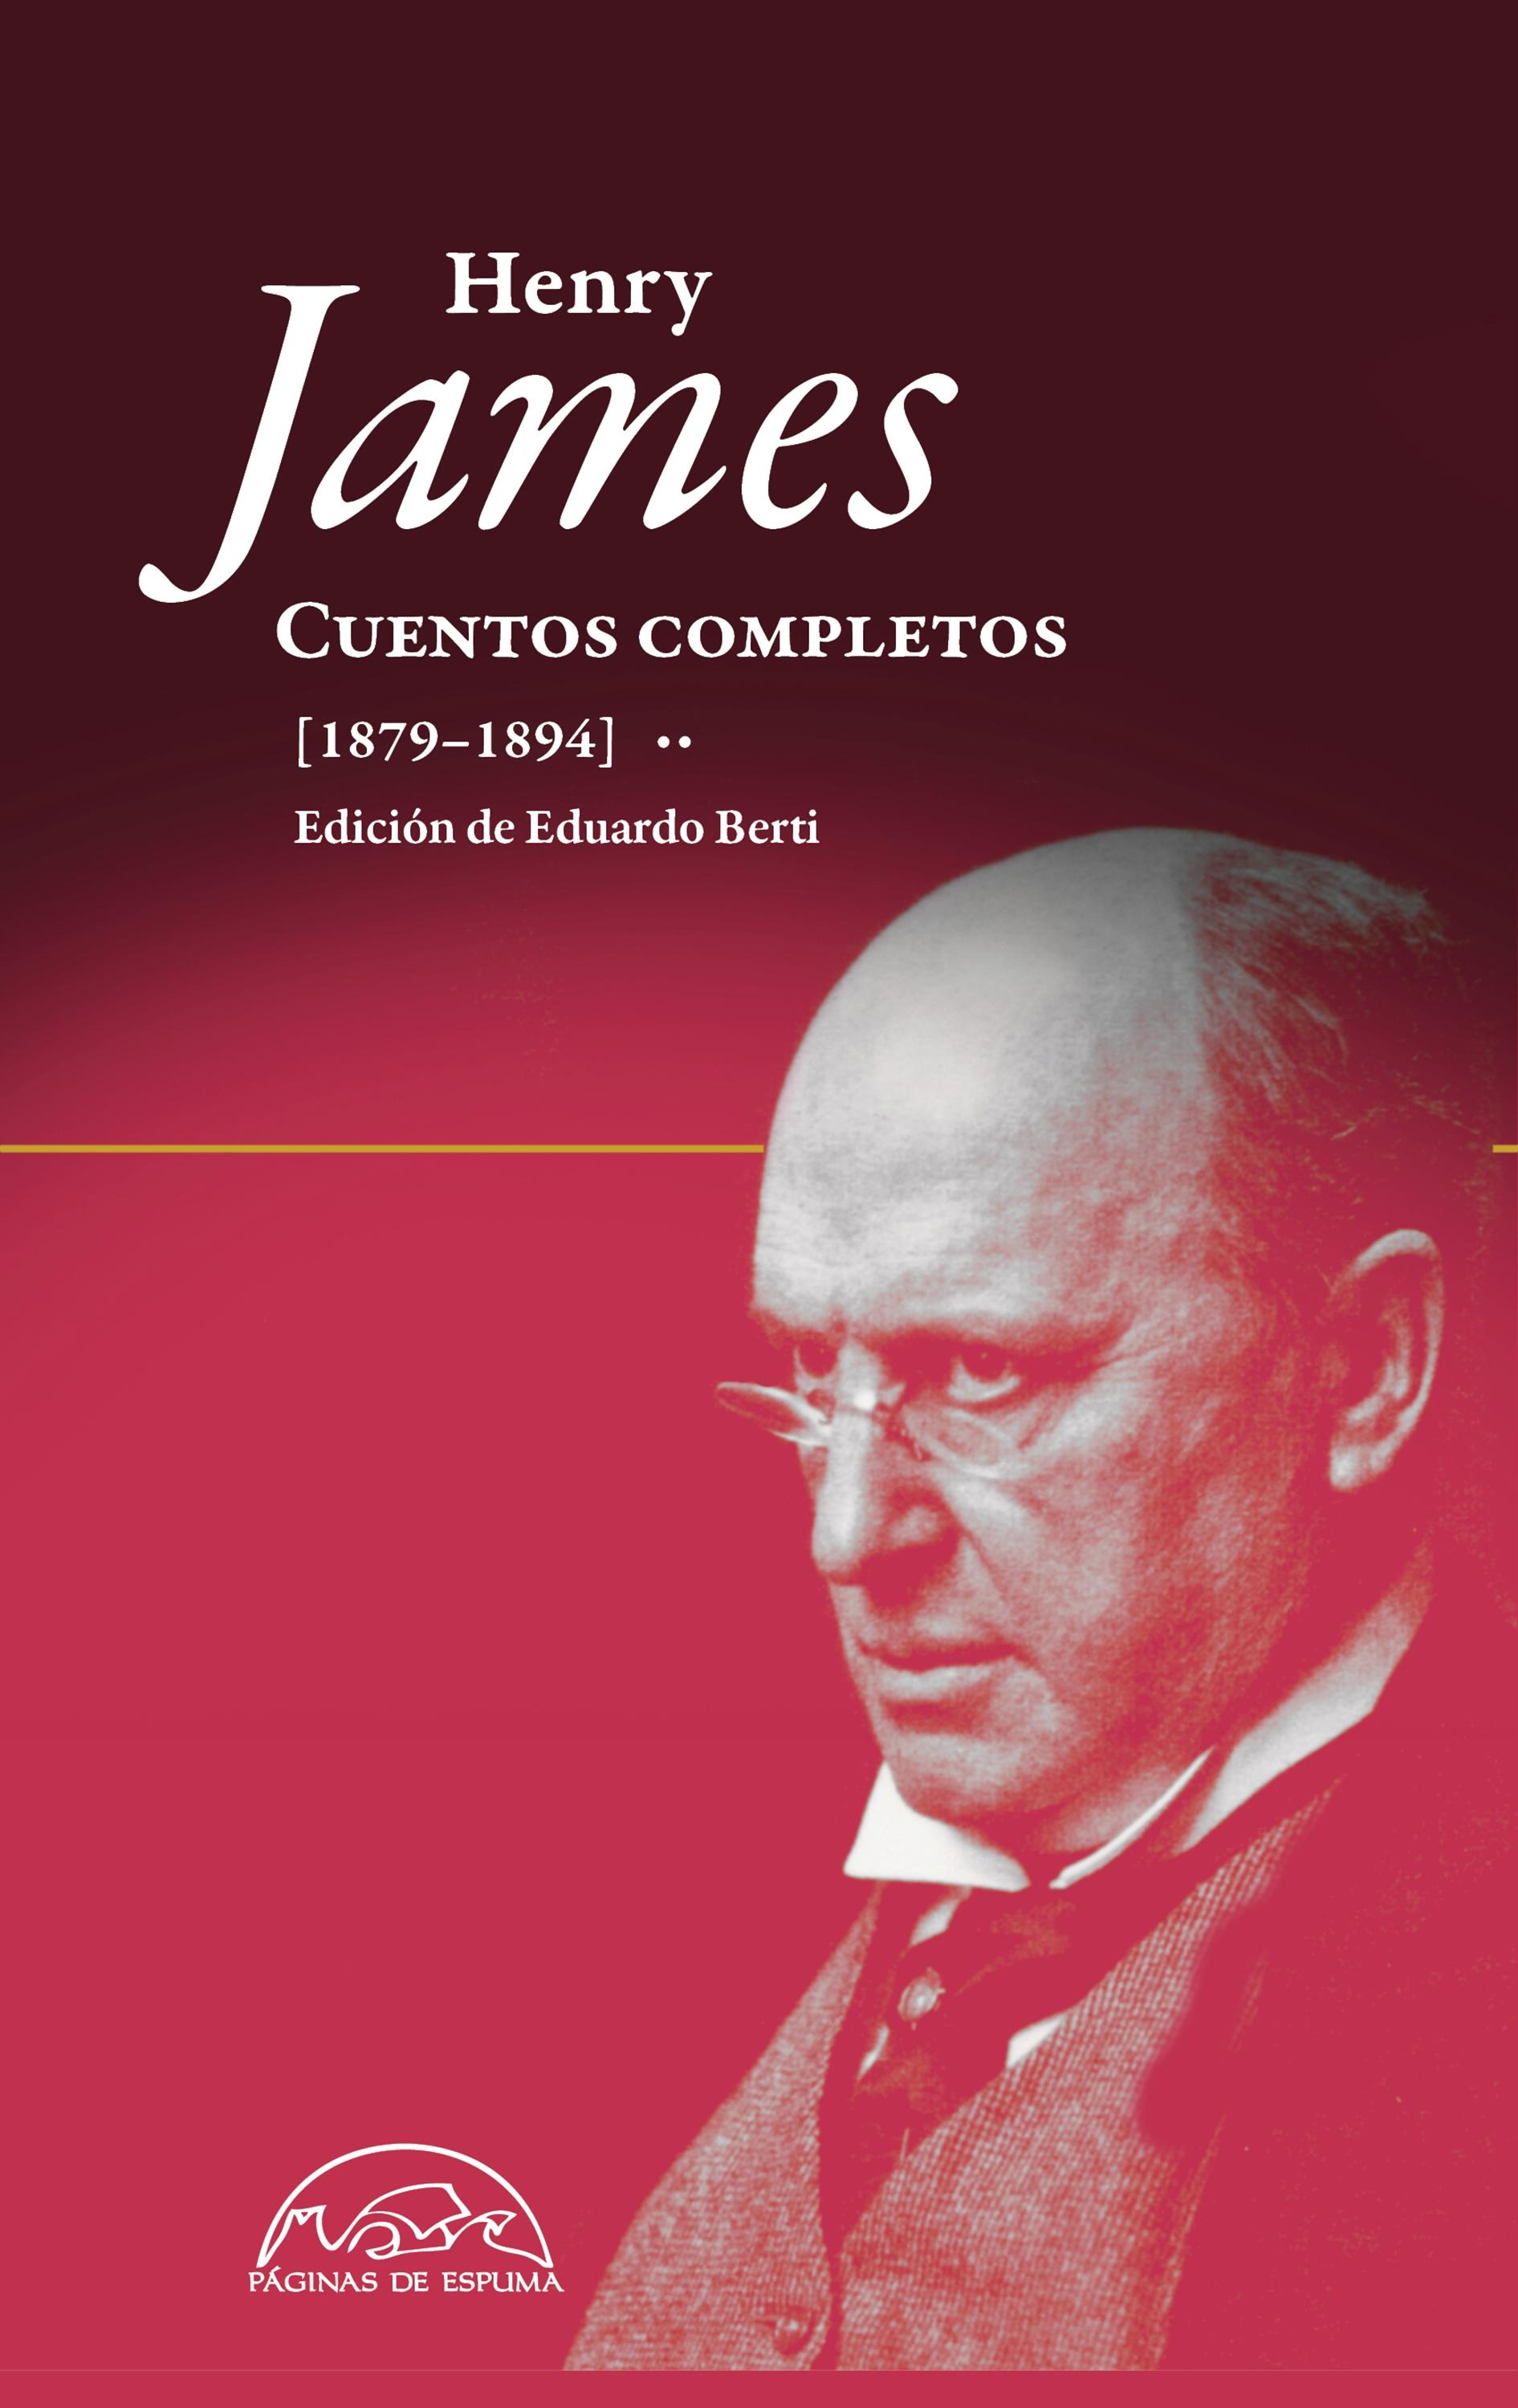 "Cuentos completos (1879-1894) ""(Tomo II) (Henry James)"""